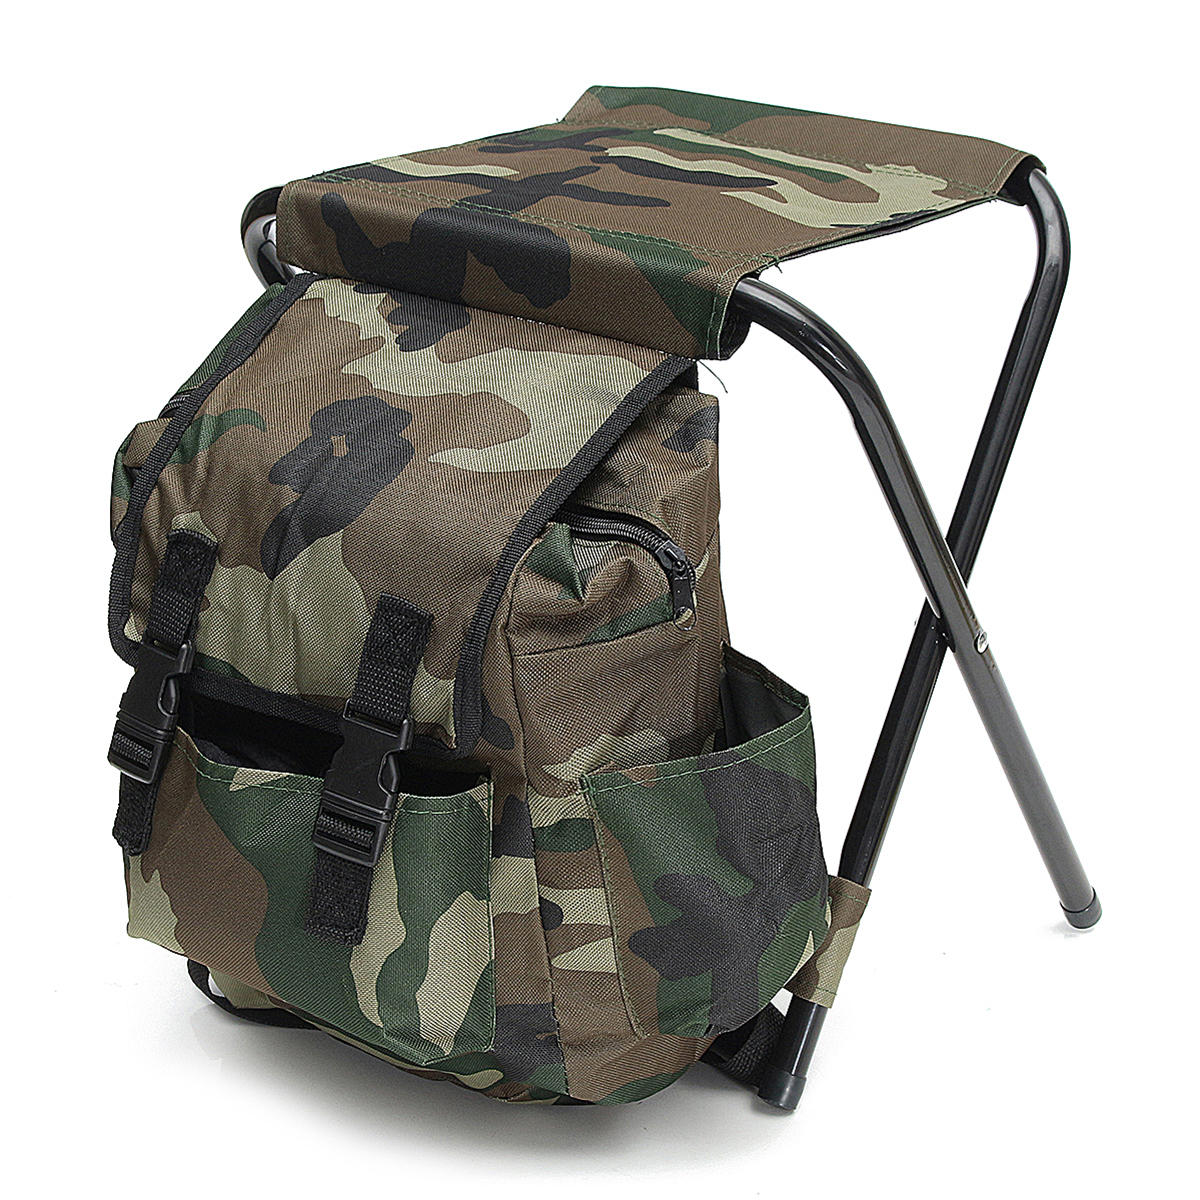 Folding Chair Backpack Outdoor Portable Folding Backpack Chair Foldable Stool Camping Picnic Max Load 100kg